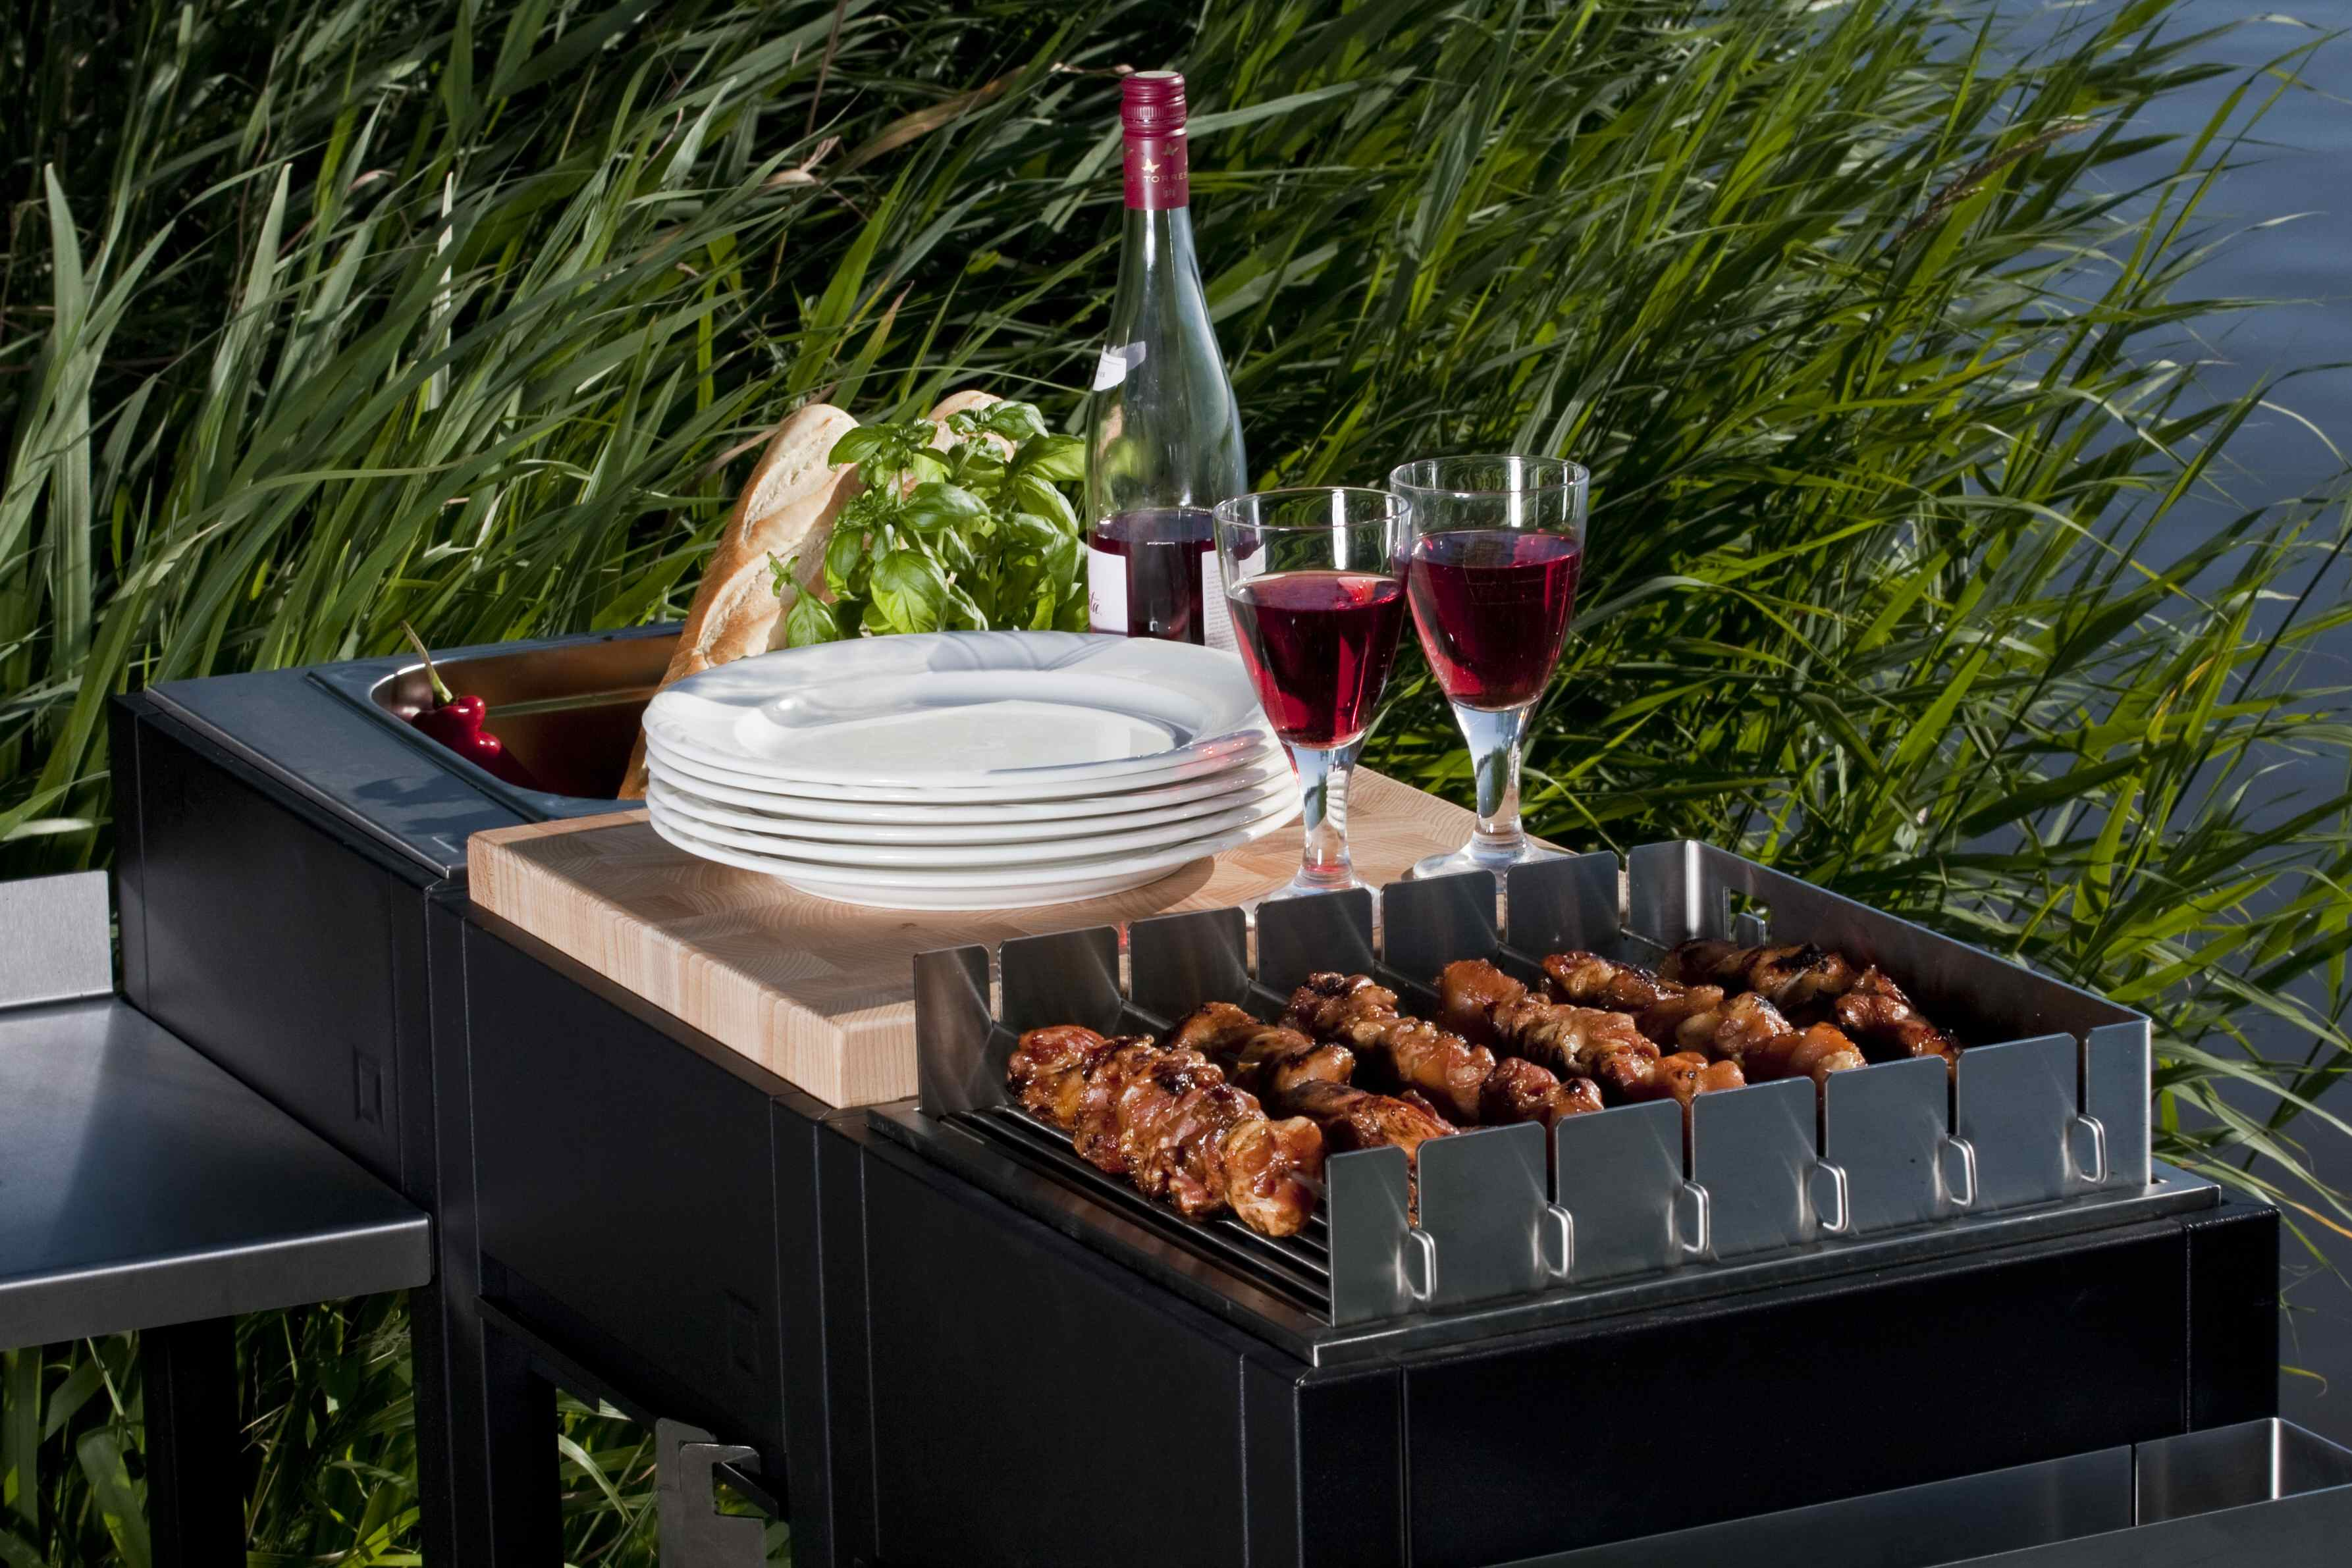 Outdoor luxury! OneQ modulaire buitenkeuken & BBQ #blog #tuin